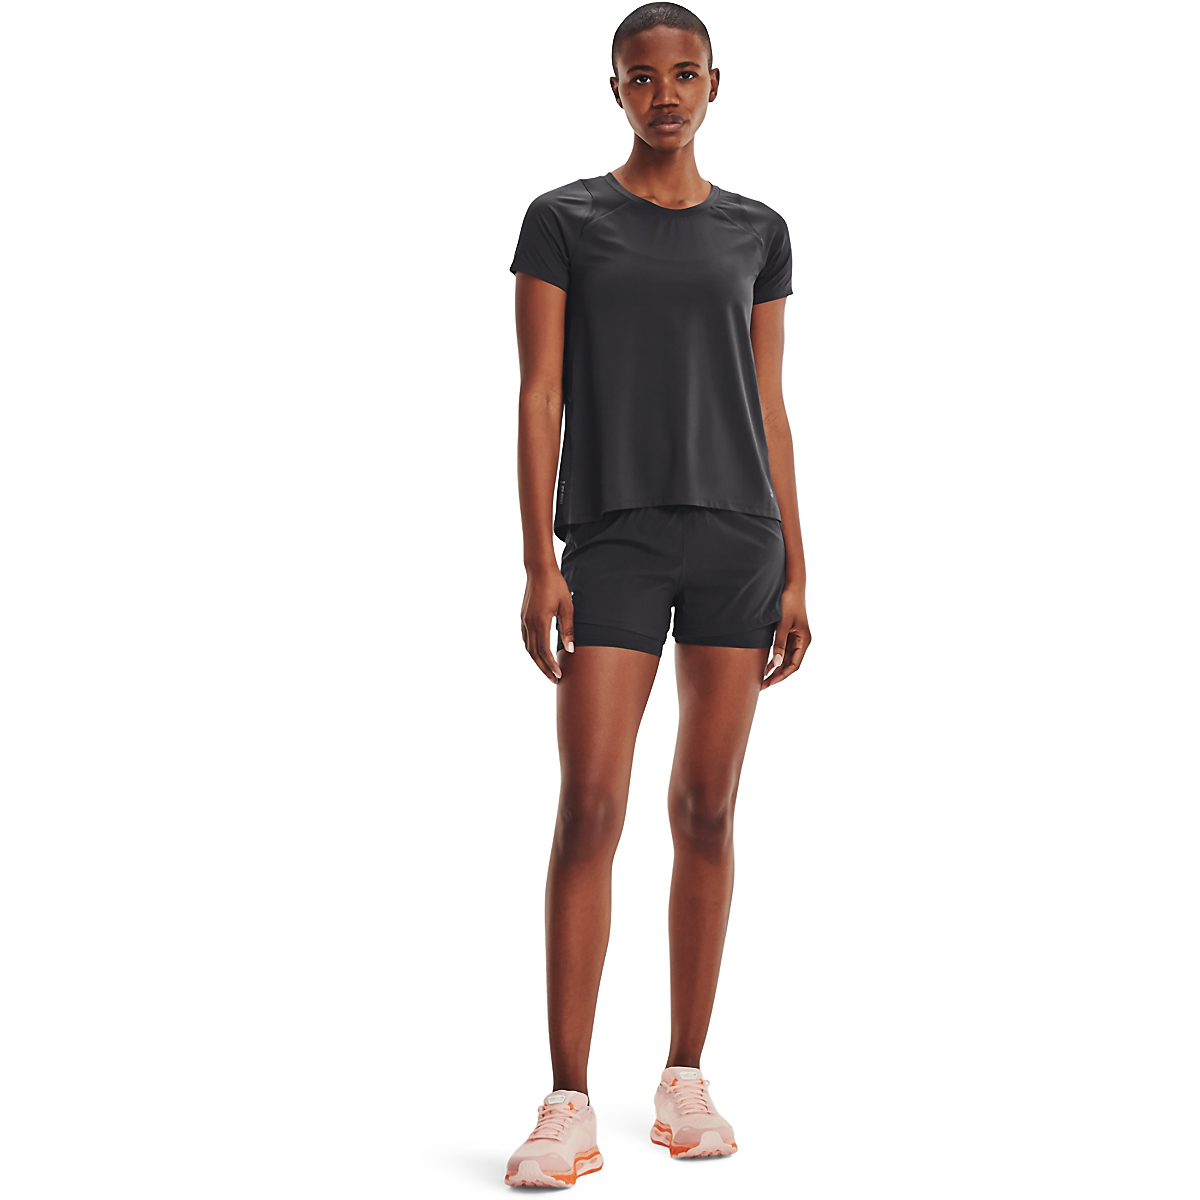 Women's Under Armour Iso-Chill Run Short Sleeve Tee - Color: Jet Gray/Jet Gray/Halo Gray - Size: XS, Jet Gray/Jet Gray/Halo Gray, large, image 1